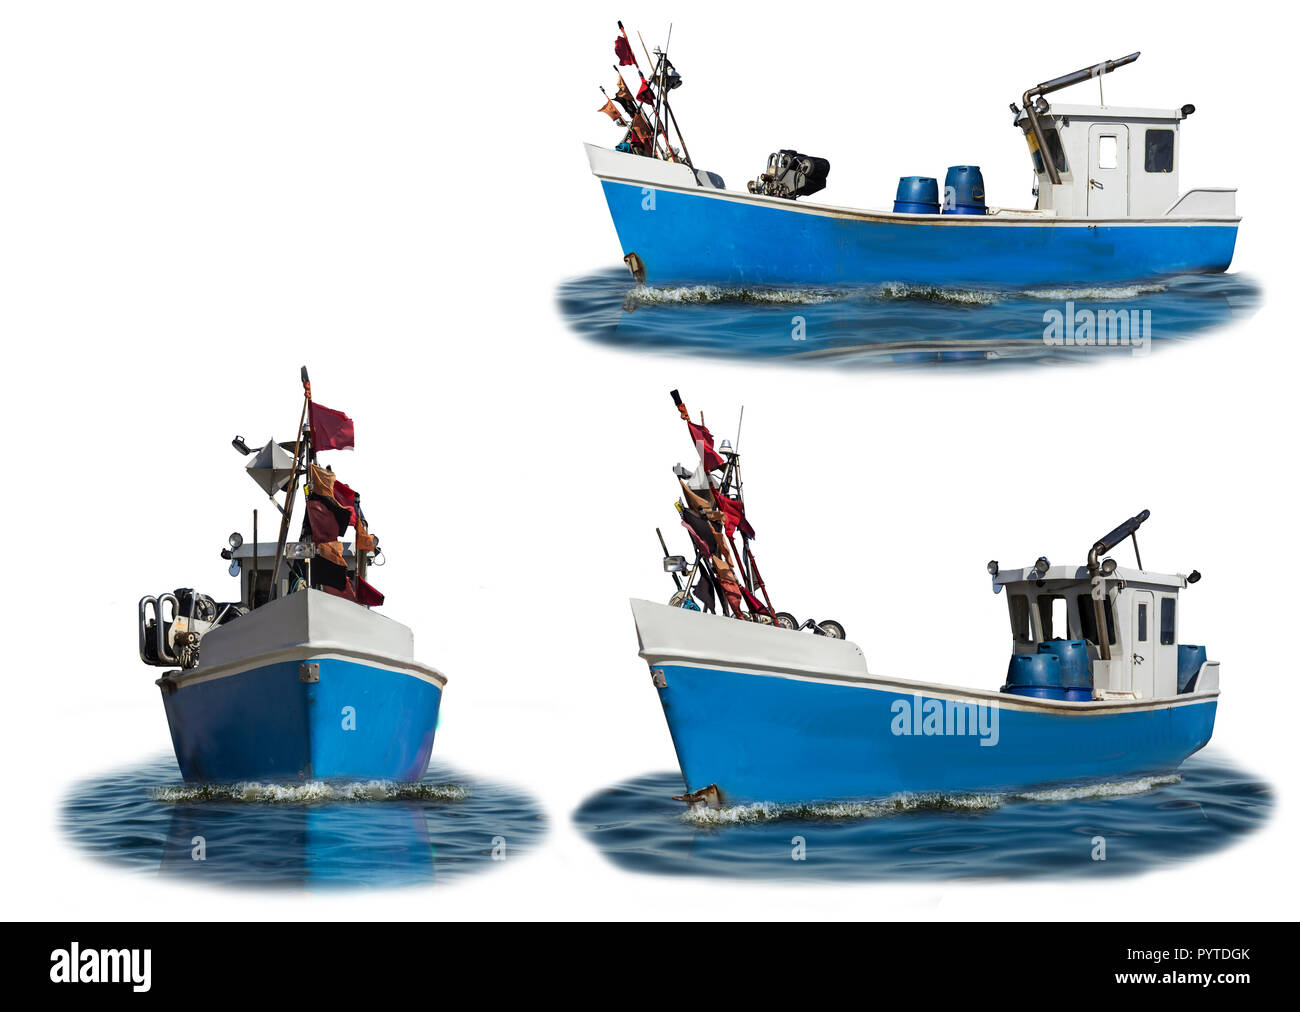 Baltic Sea.The boat with the blue plastic case and the white cabin. Three wiews. Isolated photo. Site about fishermen, shipbuilding,industry, romance. - Stock Image